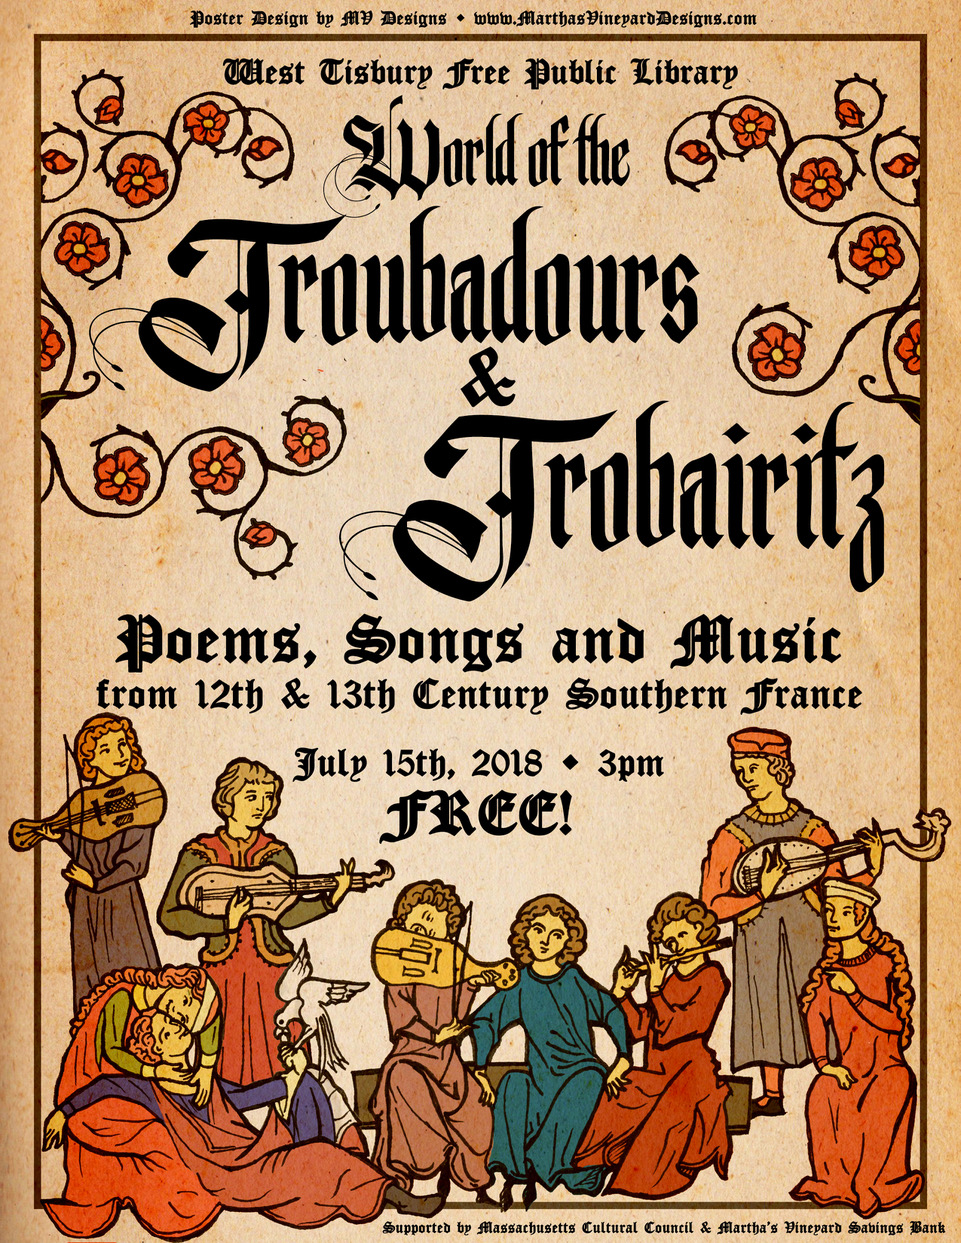 The World of the Troubadours and Trobairitz